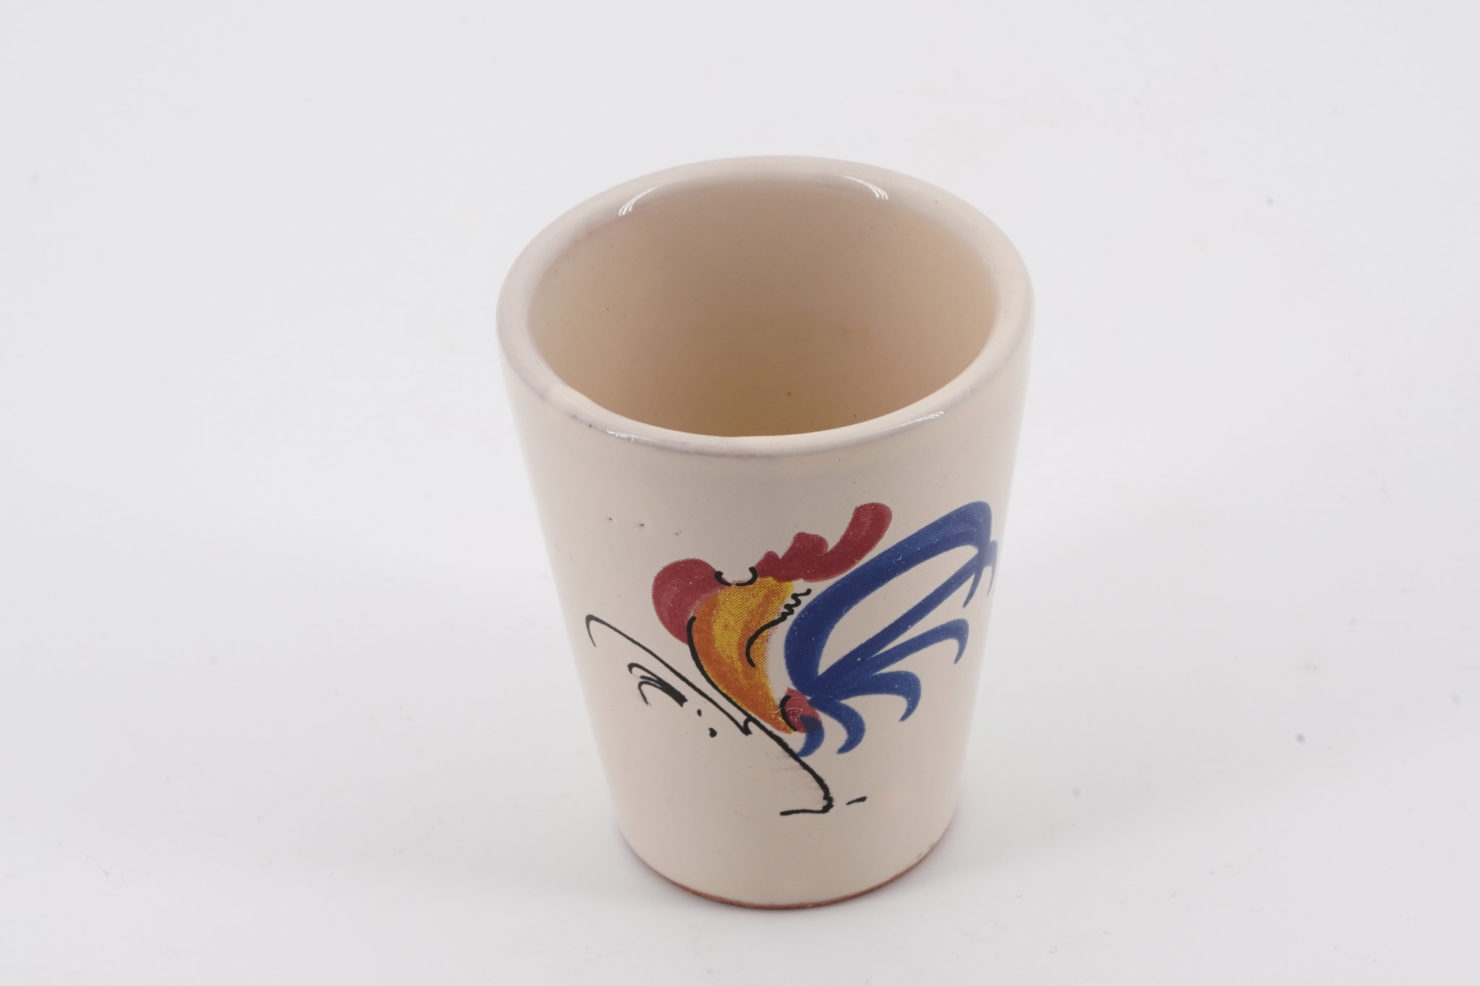 HANDPAINTED CERAMIC VARNISH SMALL GLASS WITH ROOSTER SUGGESTED FOR LIMONCELLO DRINK - FRATELLI COLI